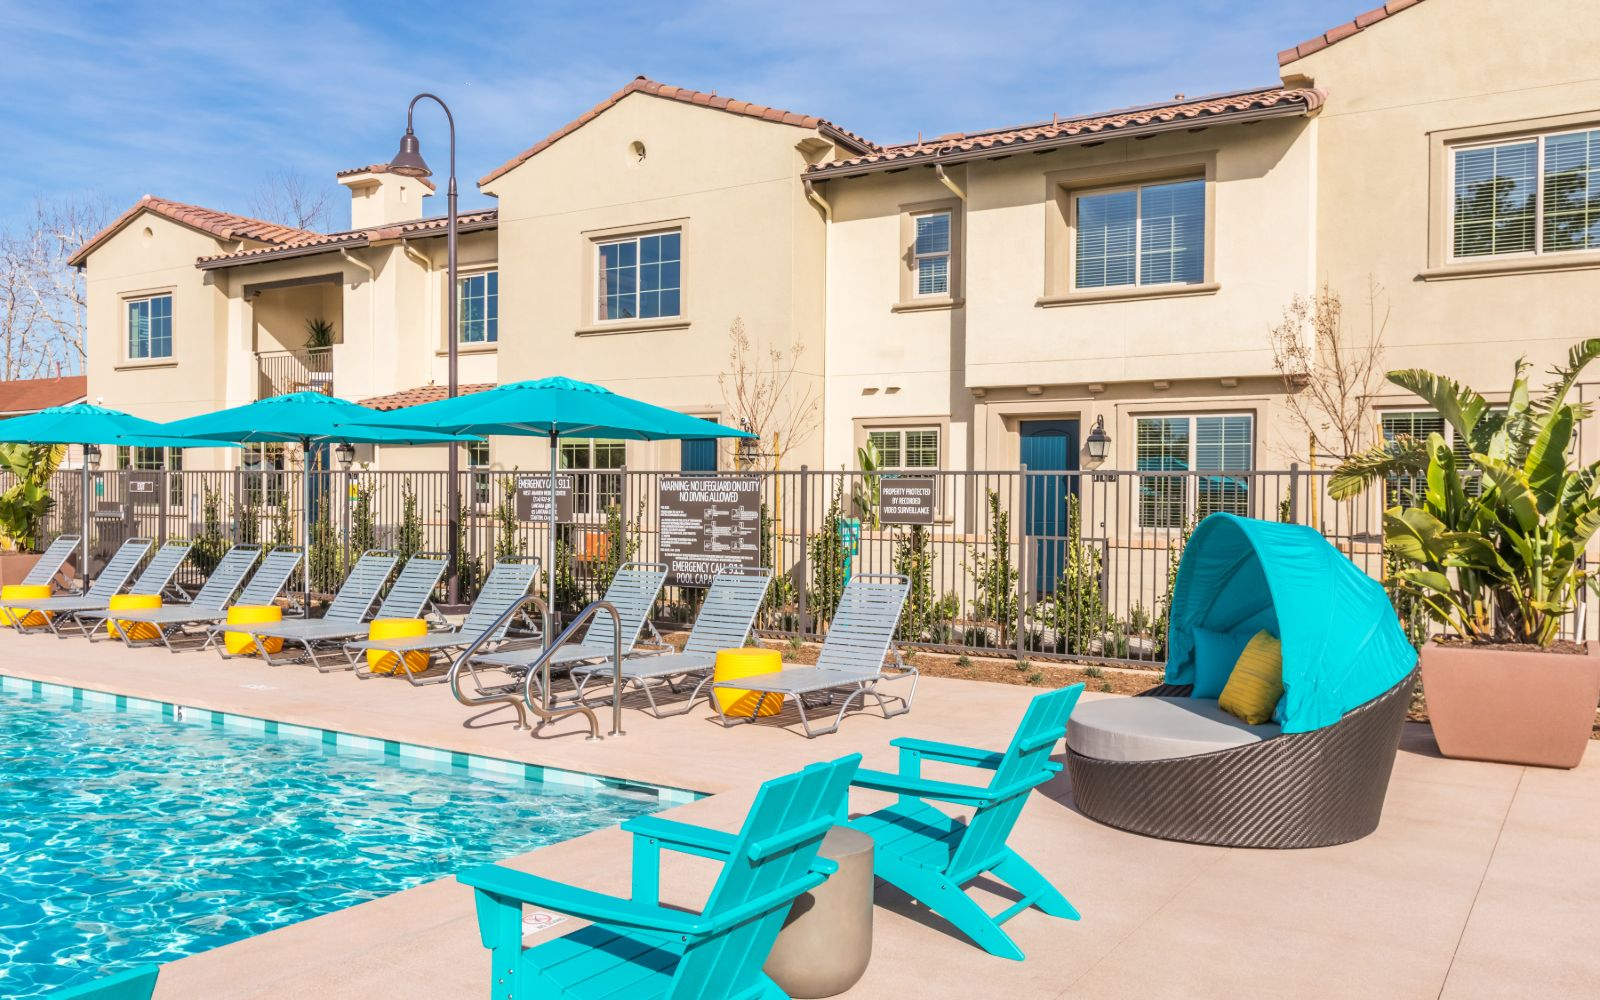 Pool Area Lantana Beach in Stanton CA Brookfield Residential